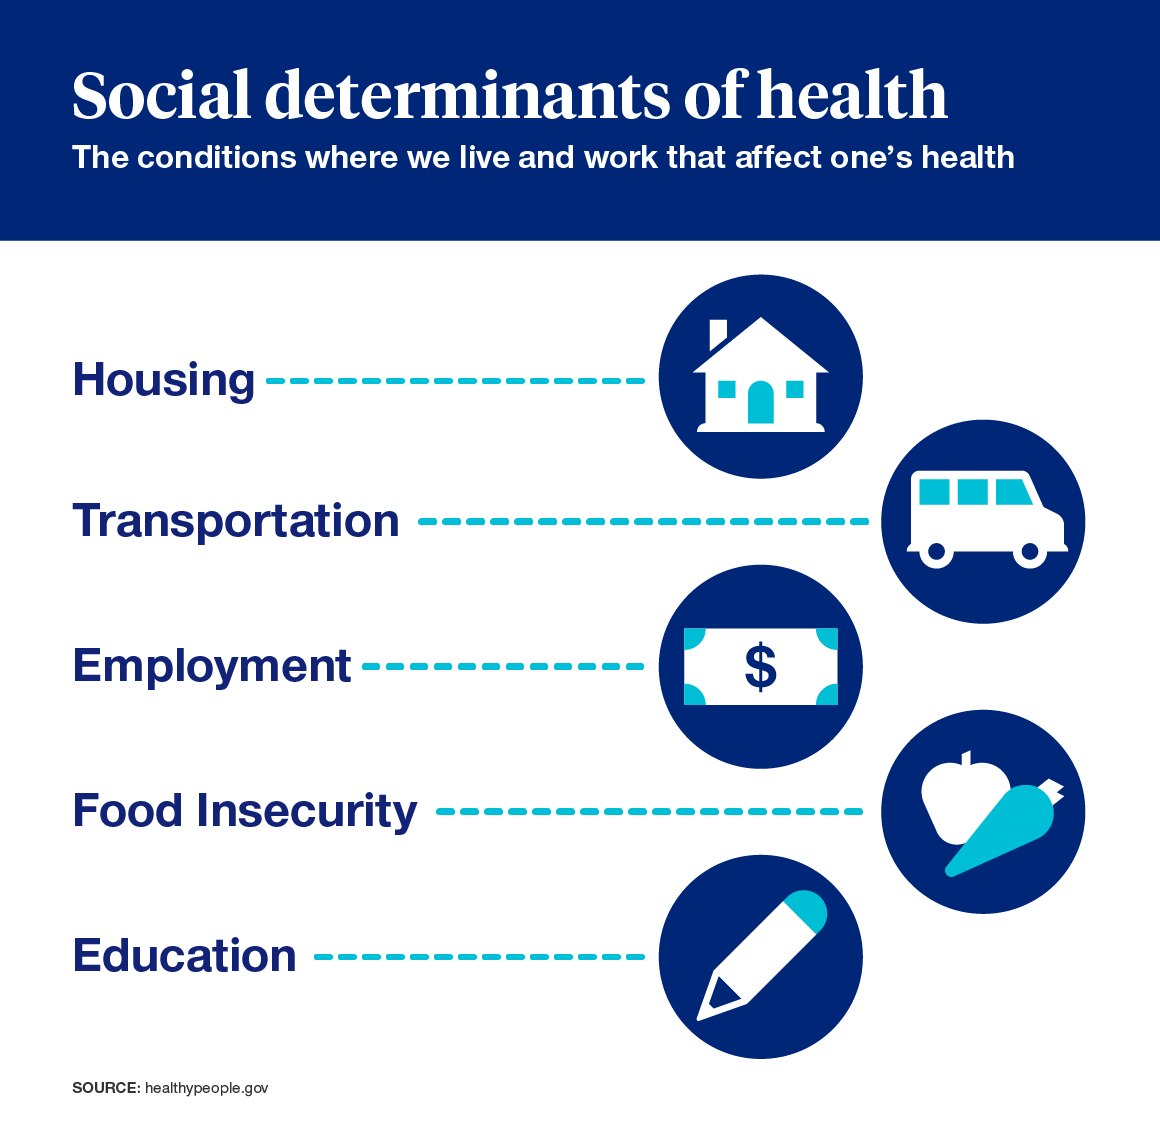 Infographic: Housing, transportation, employement, food insecurity, education